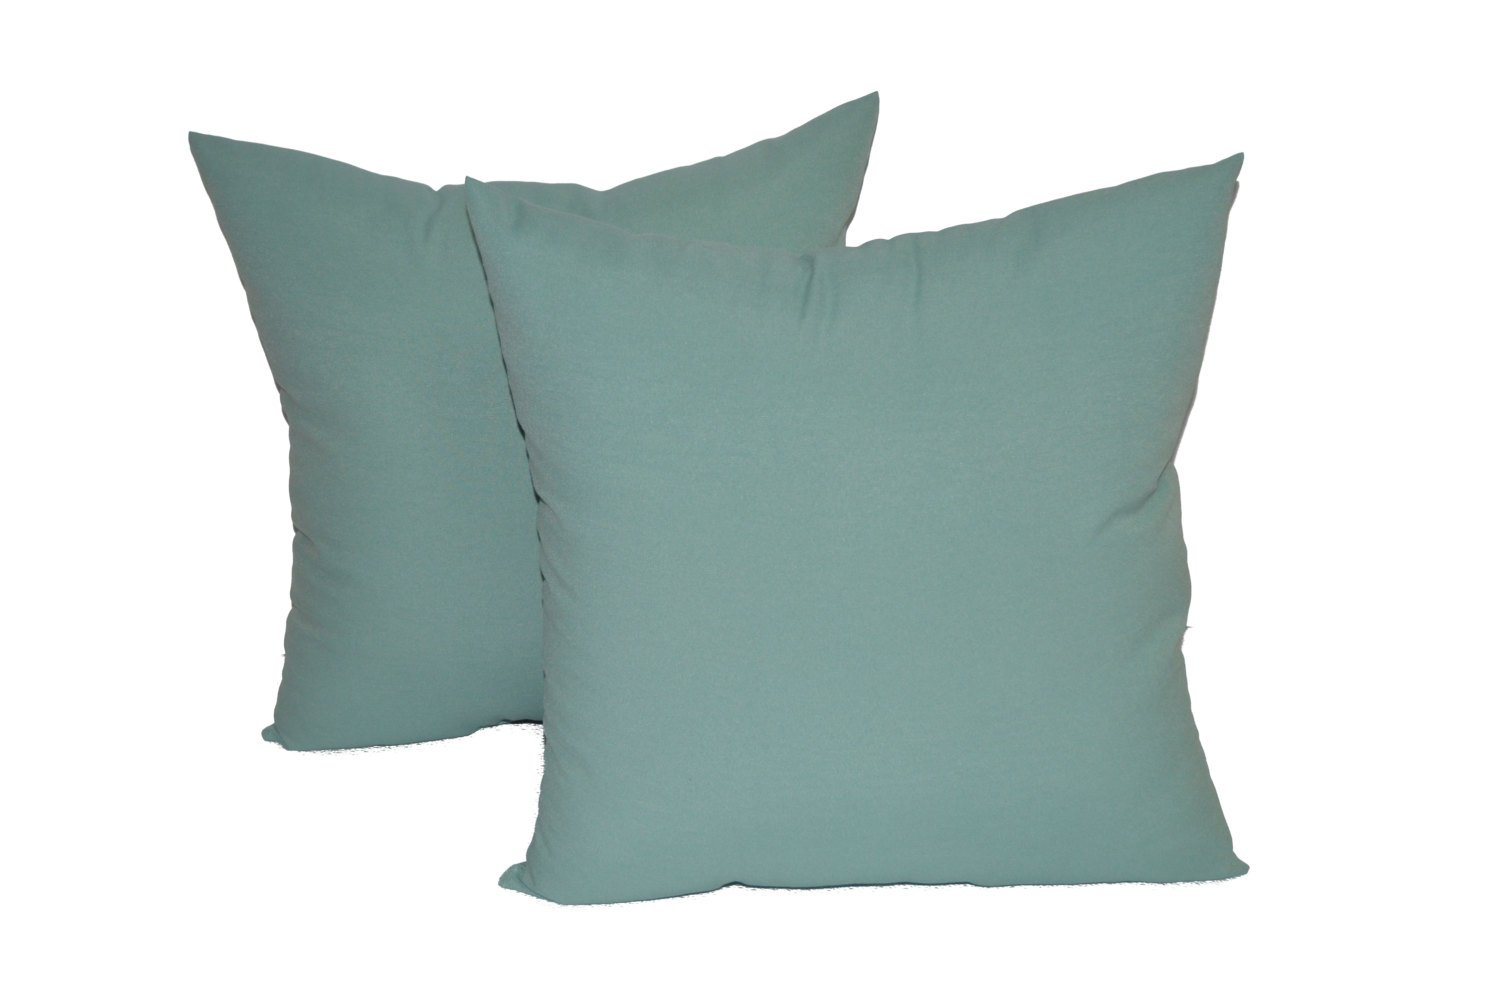 Set of 2 - Indoor / Outdoor 24'' Jumbo / Large / Over-sized Square Decorative Throw / Toss Pillows - Solid Aqua / Spa